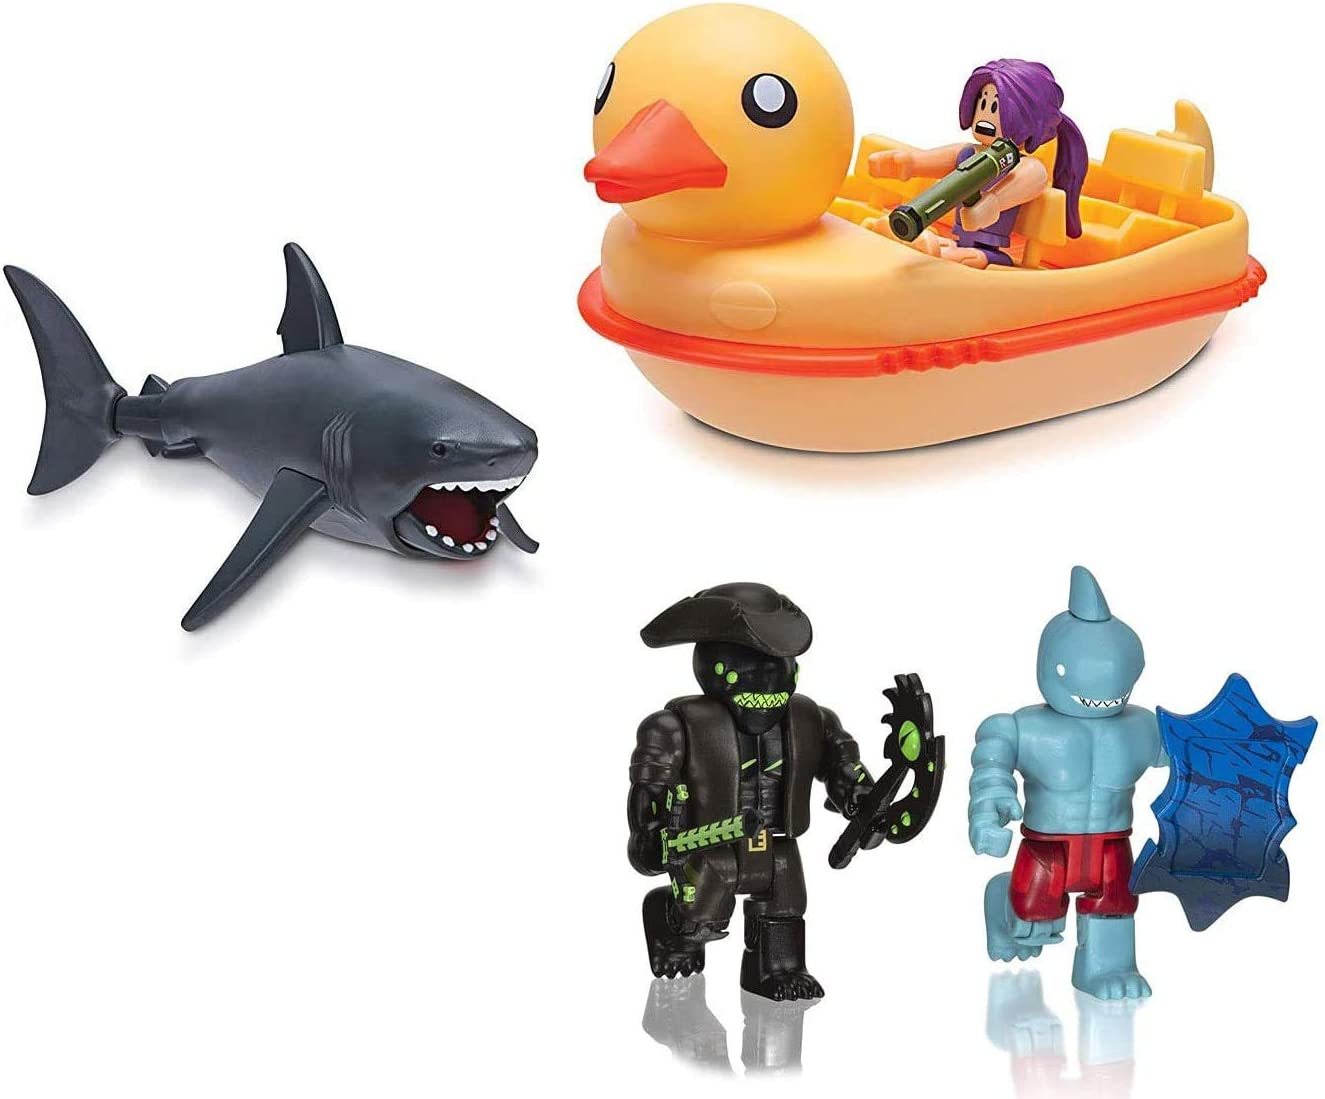 Roblox Chomp Chomp! Starter Pack/ Collector's Pack Series Sharkbite Duck Boat + A Pirates' Tale Shark People 2 Pack (Jumbo Pack)